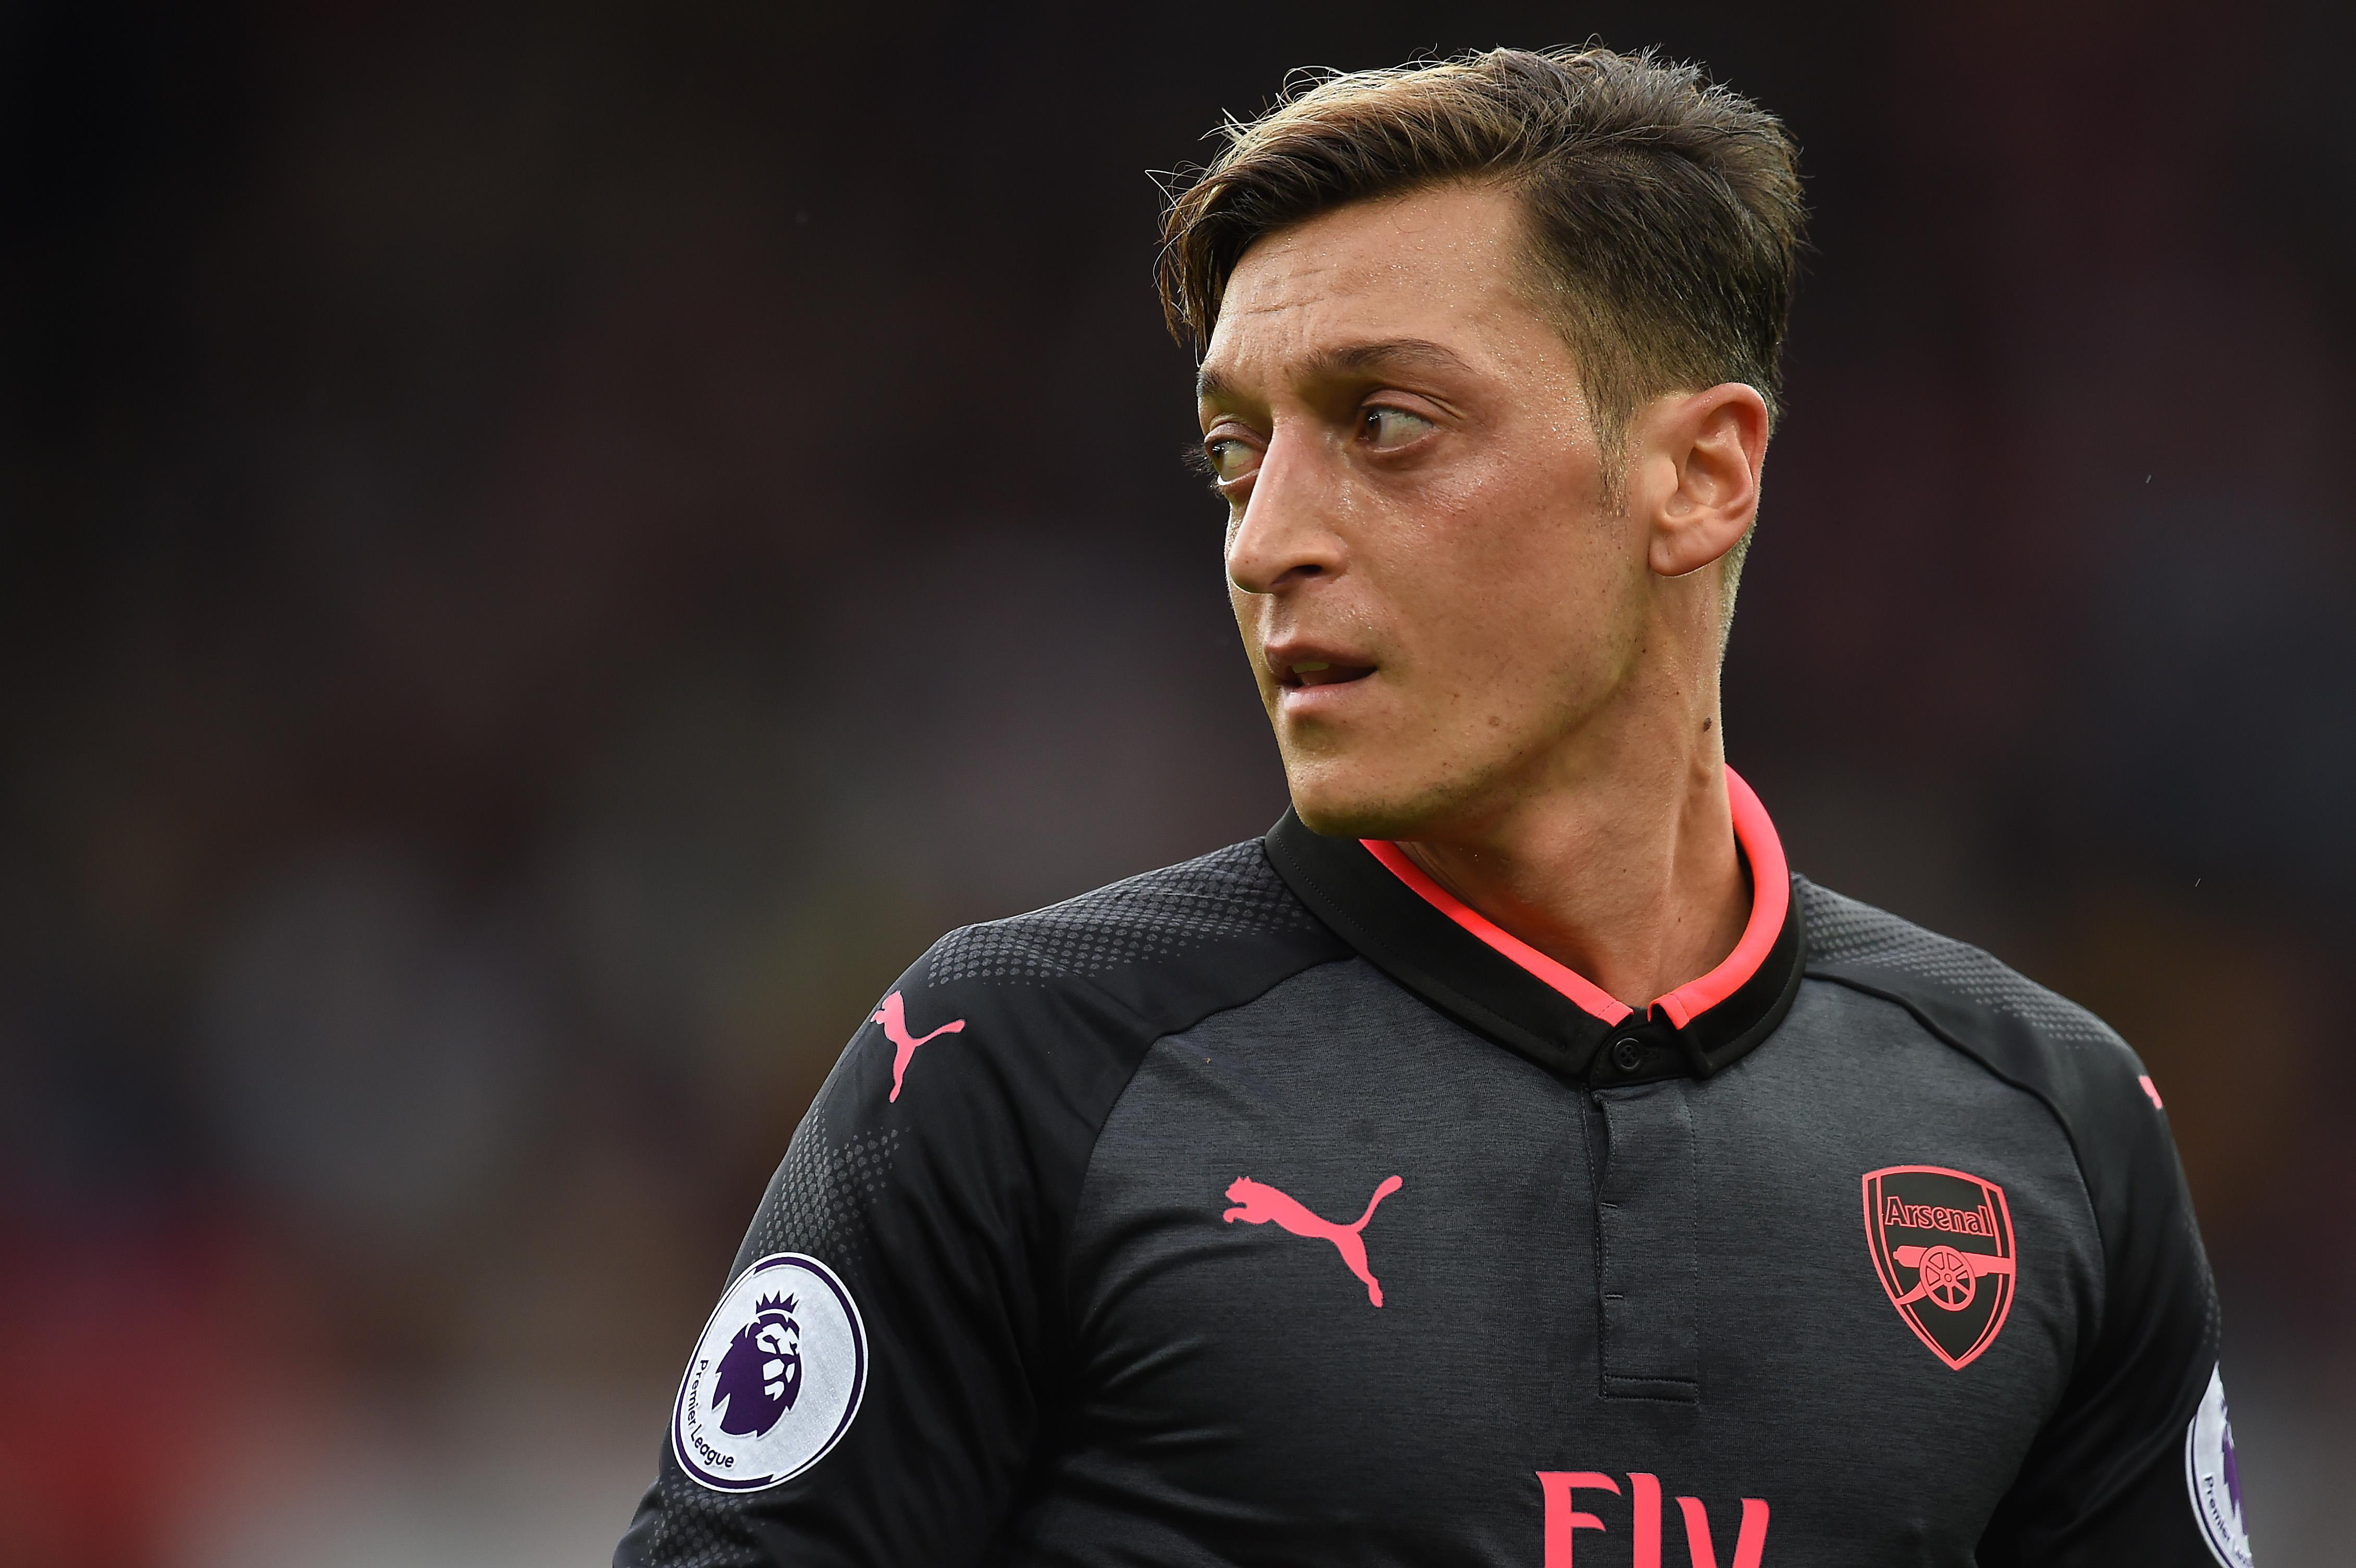 Mesut Ozil has told Arsenal's legends to shut up and start supporting the club